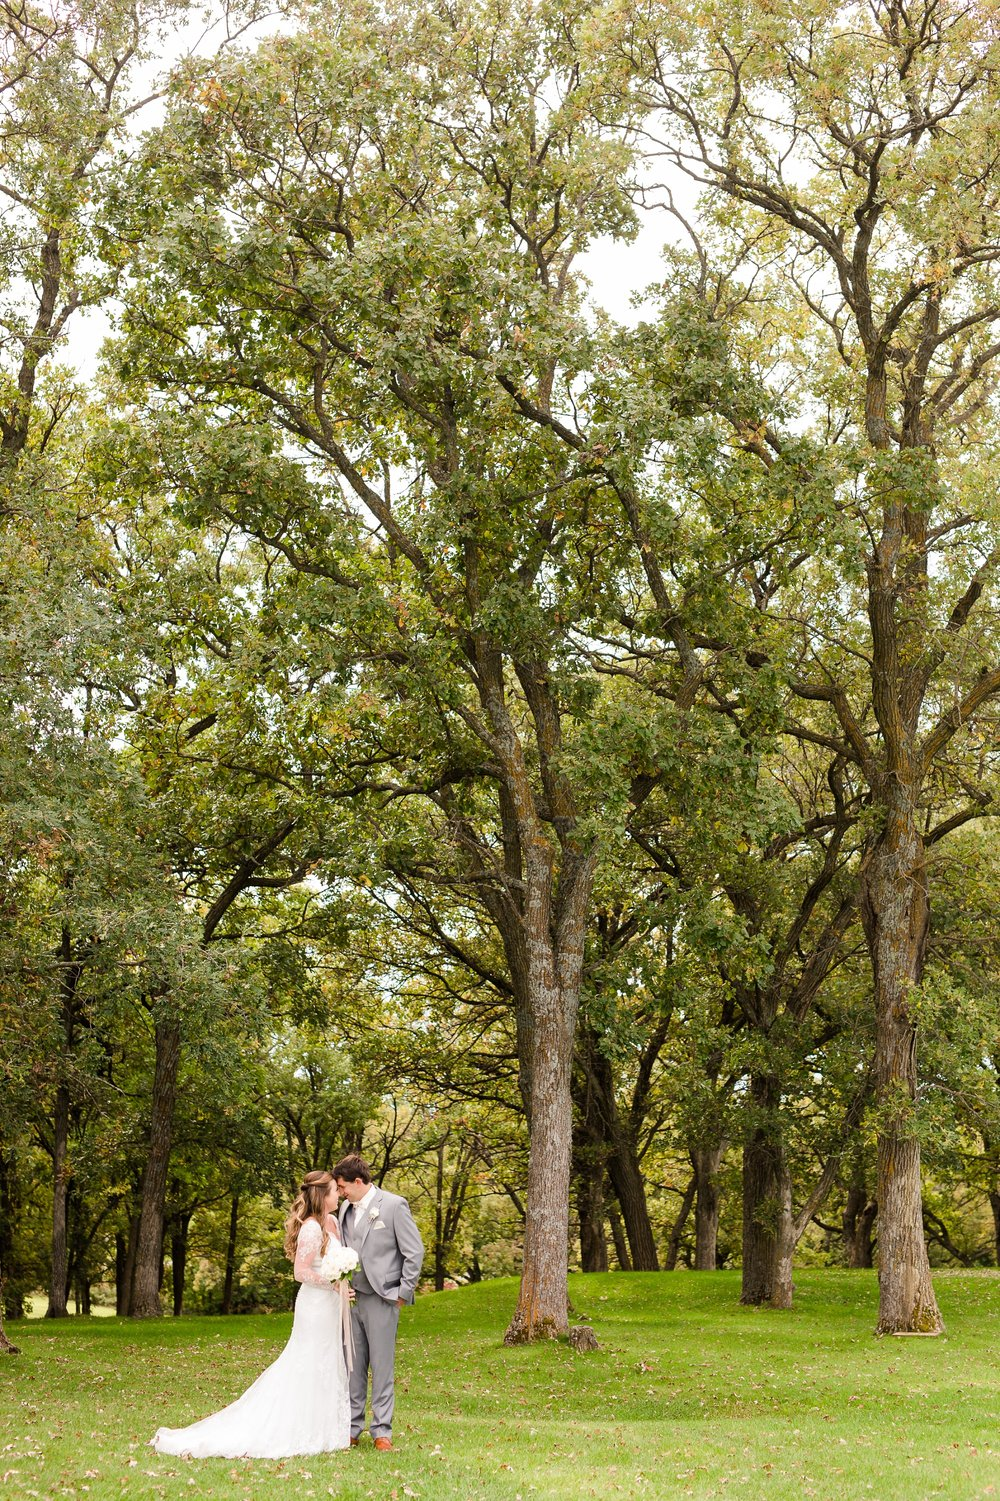 AmberLangerudPhotography_Fair Hills Resort Lakeside Wedding in Minnesota_3432.jpg